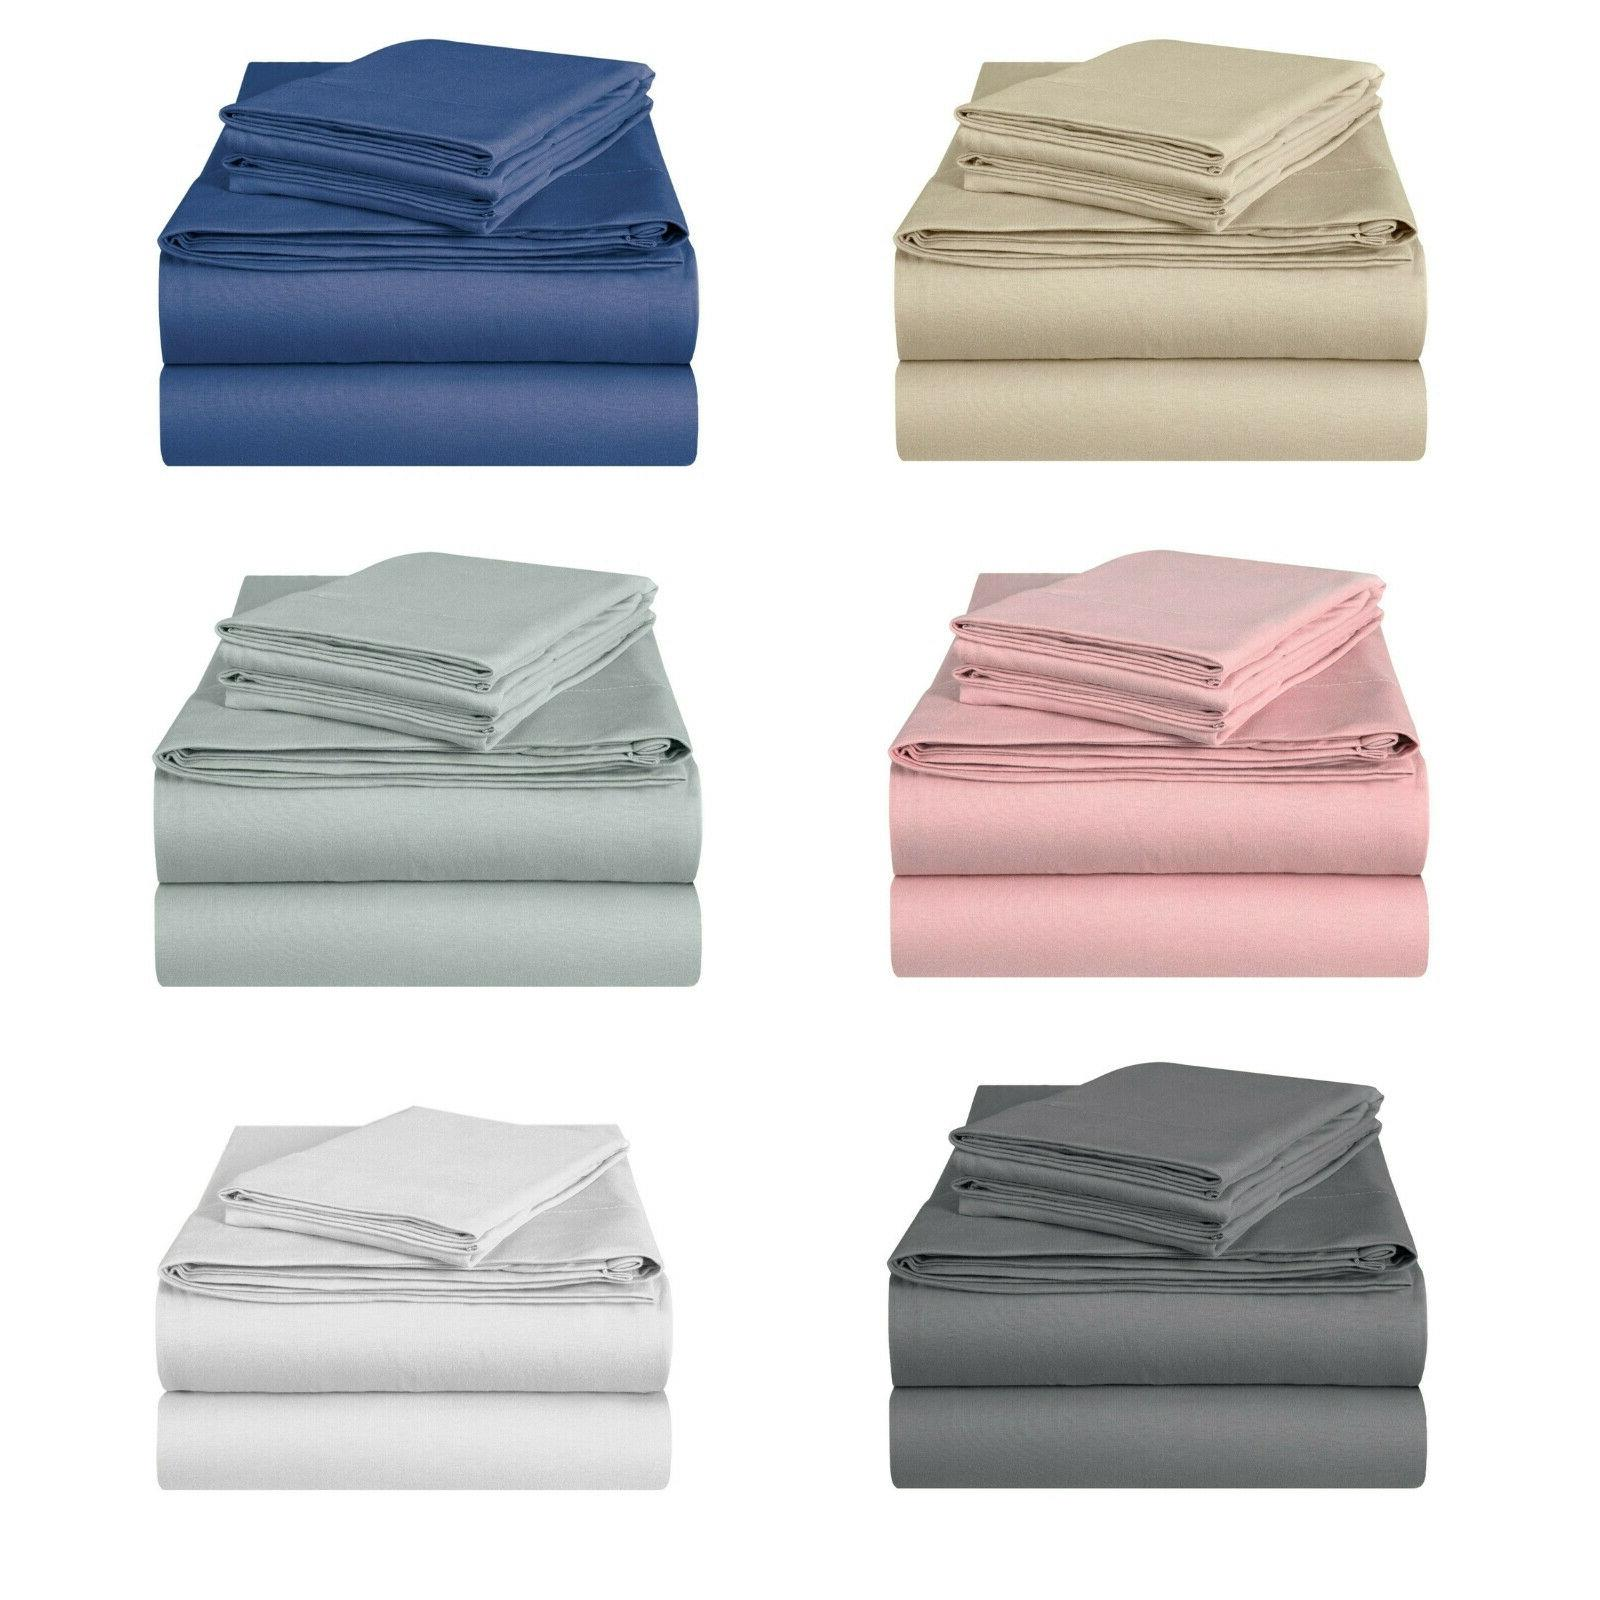 jersey knit cotton fitted sheet soft breathable